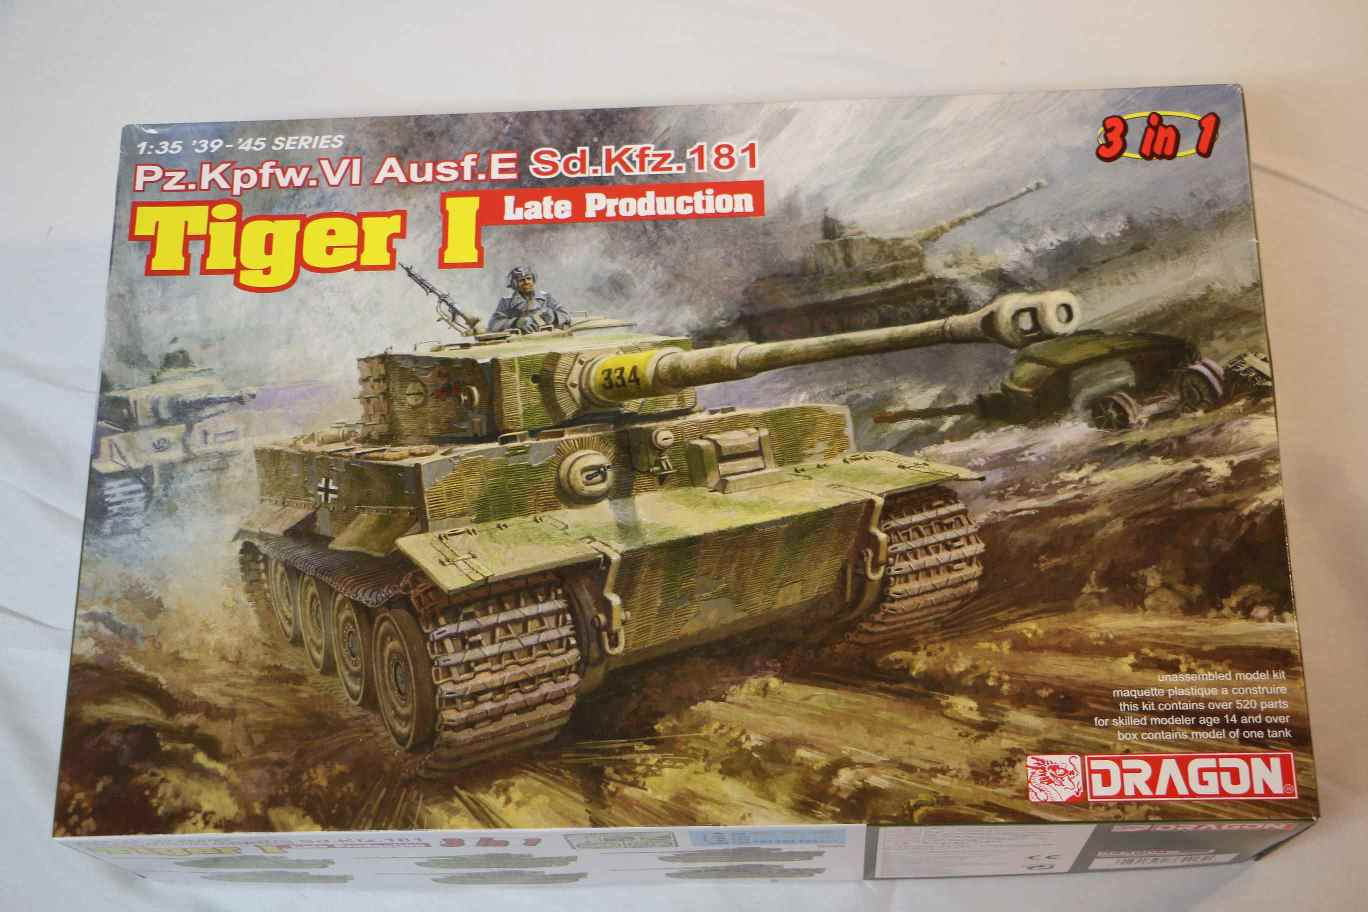 DRA6406 - Dragon 1/35 PzKpfw VI Ausf E SdKfz 181 Tiger I Late Tank (3 in 1)